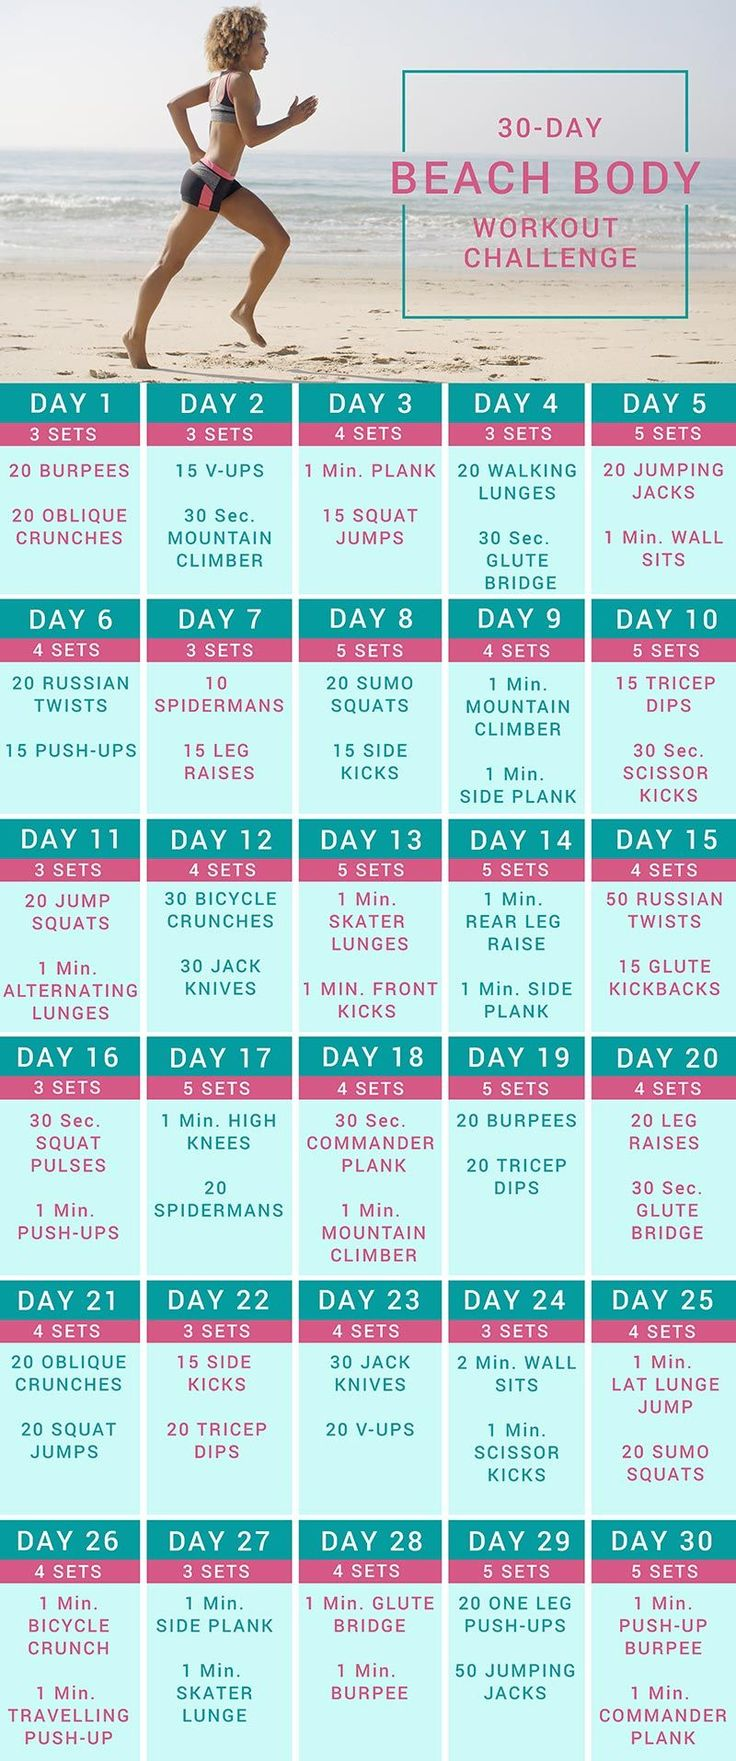 Take The 30-Day Beach Body Challenge!